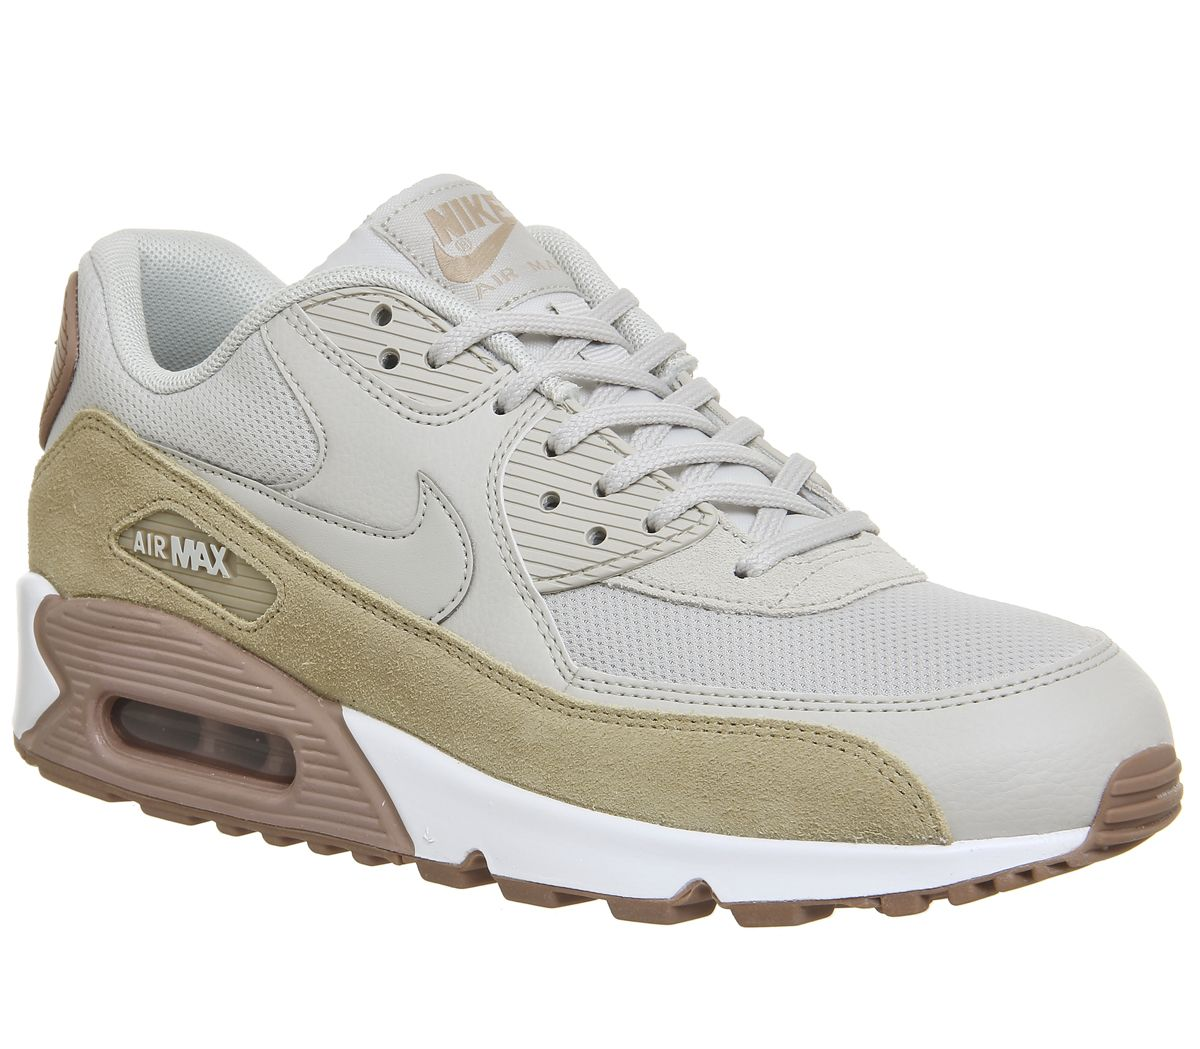 official photos 83bcf 2e080 Nike Air Max 90 Light Bone Mushroom Particle Pink - Unisex Sports